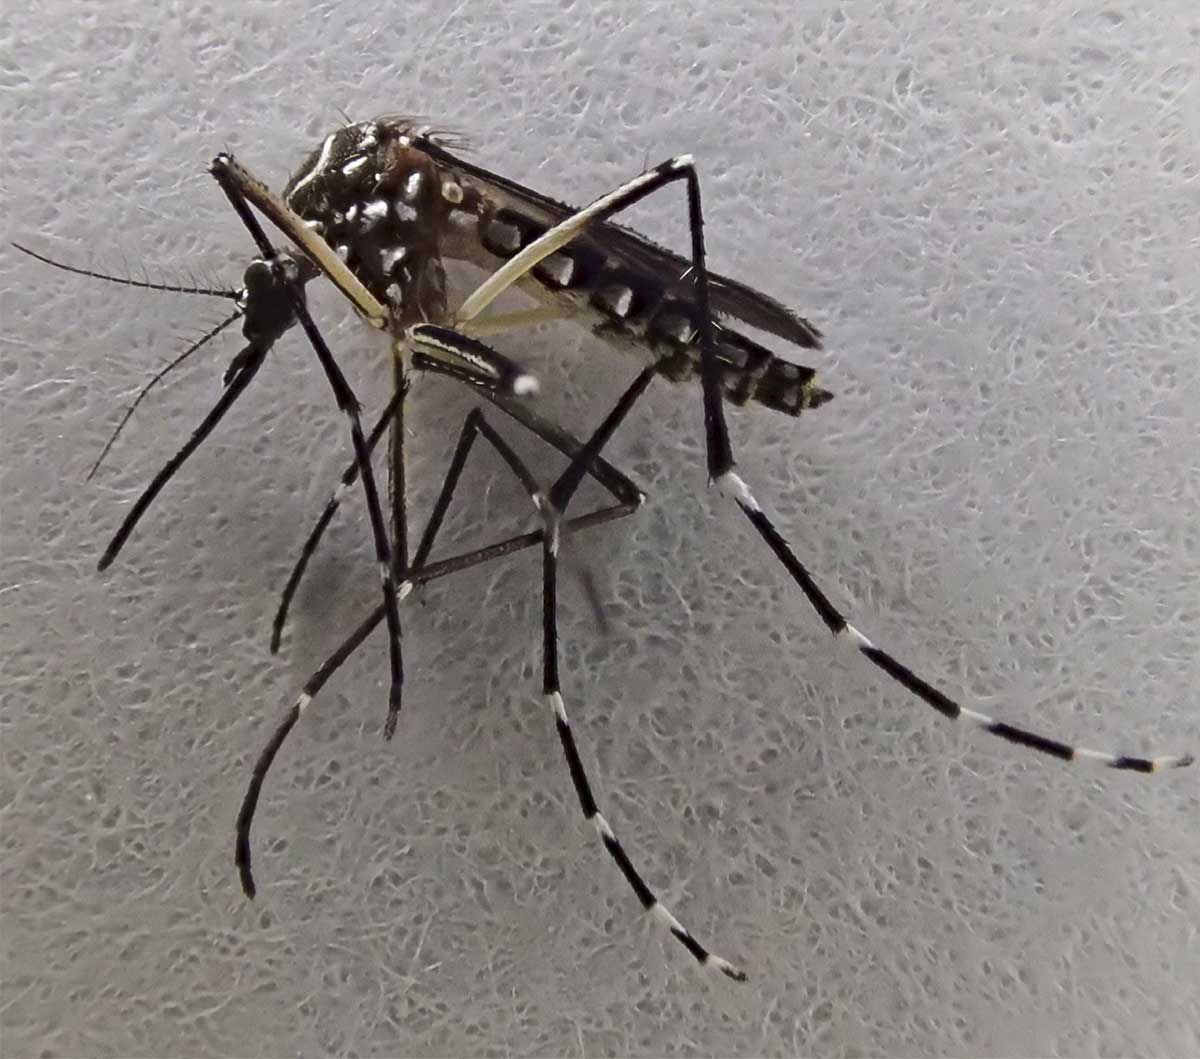 This bites: Pesky yellow fever mosquito found in Stockton for third straight year